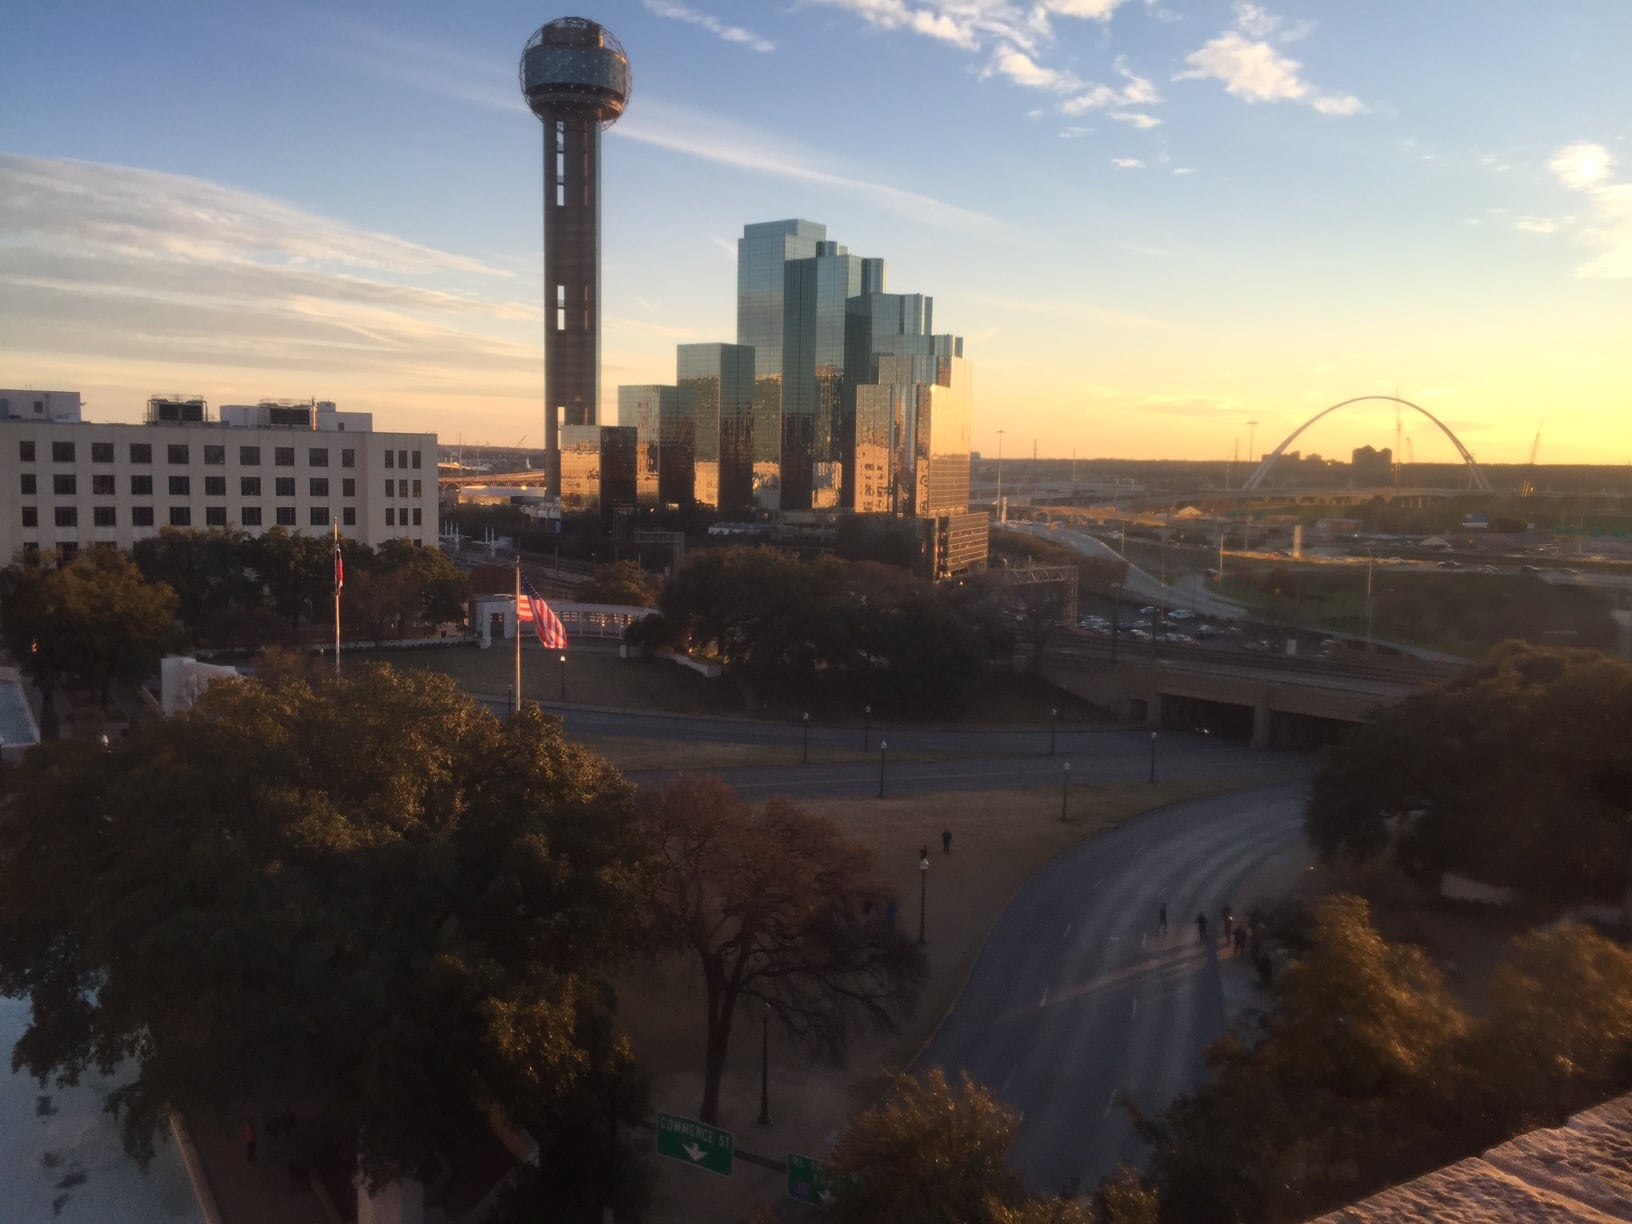 Learn about JFK's Assassination at the Dallas Sixth Floor Museum